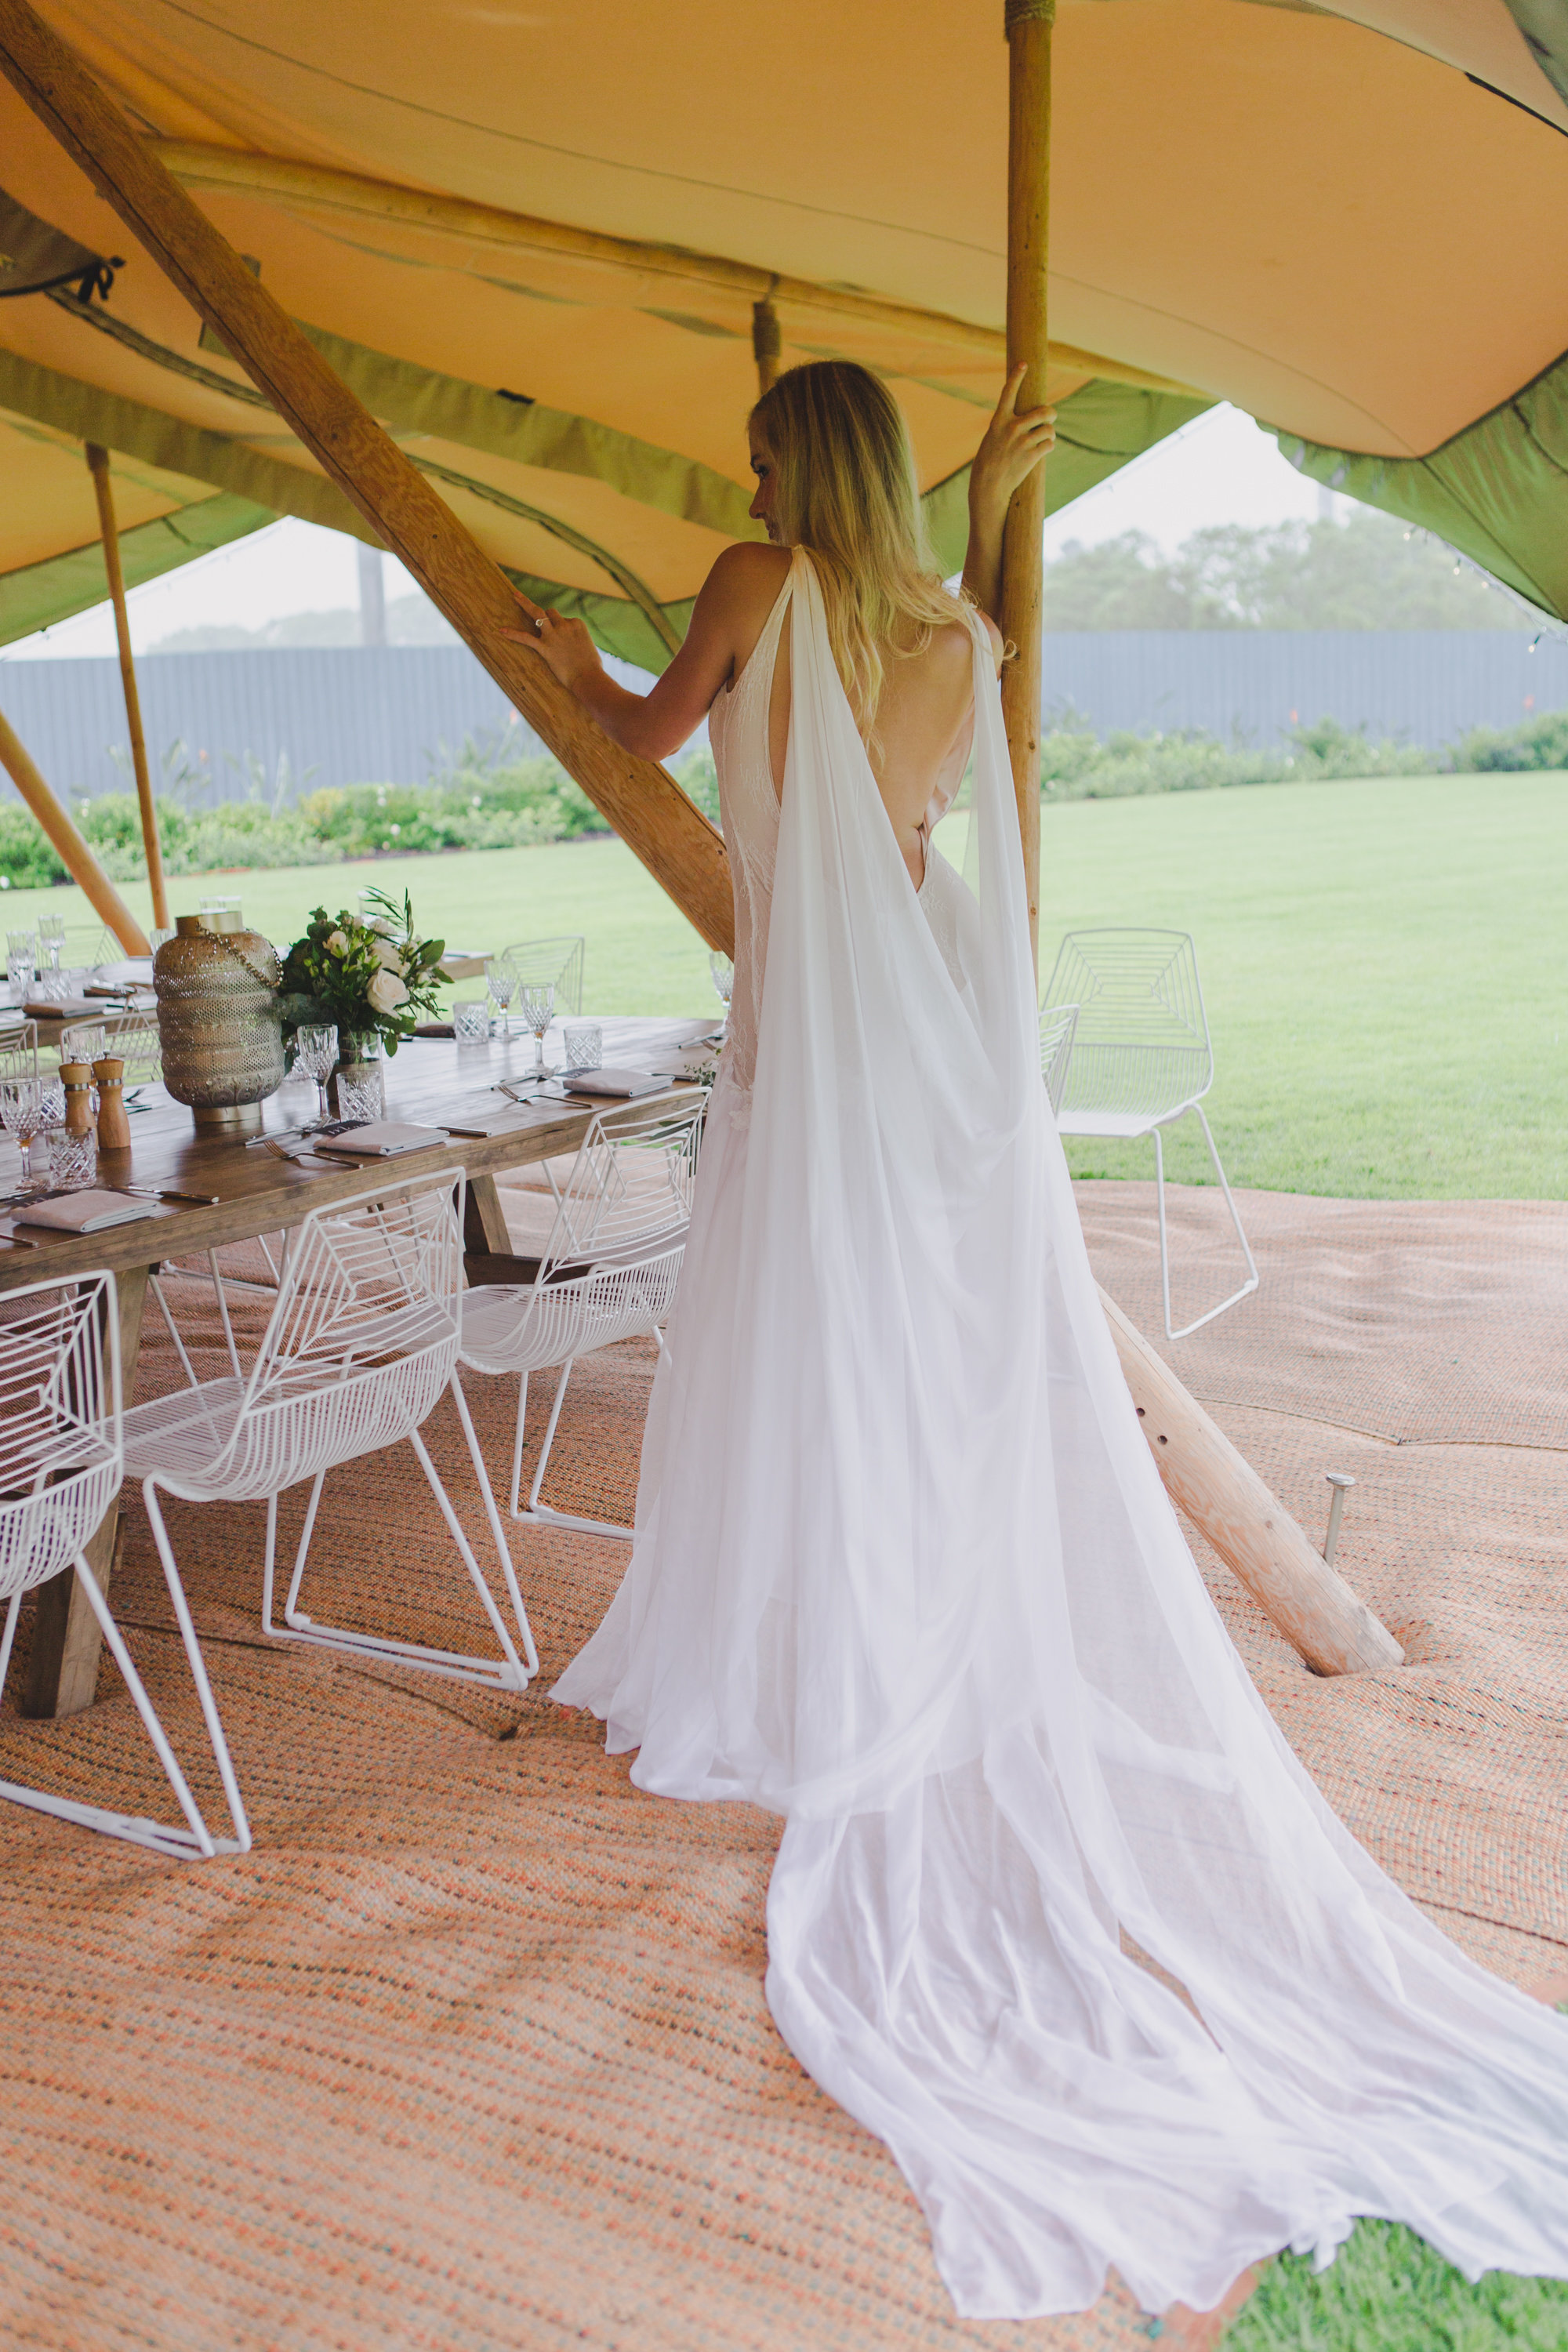 gold coast bridal wear, boho wedding dresses, gold coast wedding dresses, bohemian wedding dress, gold coast tipis, Begitta